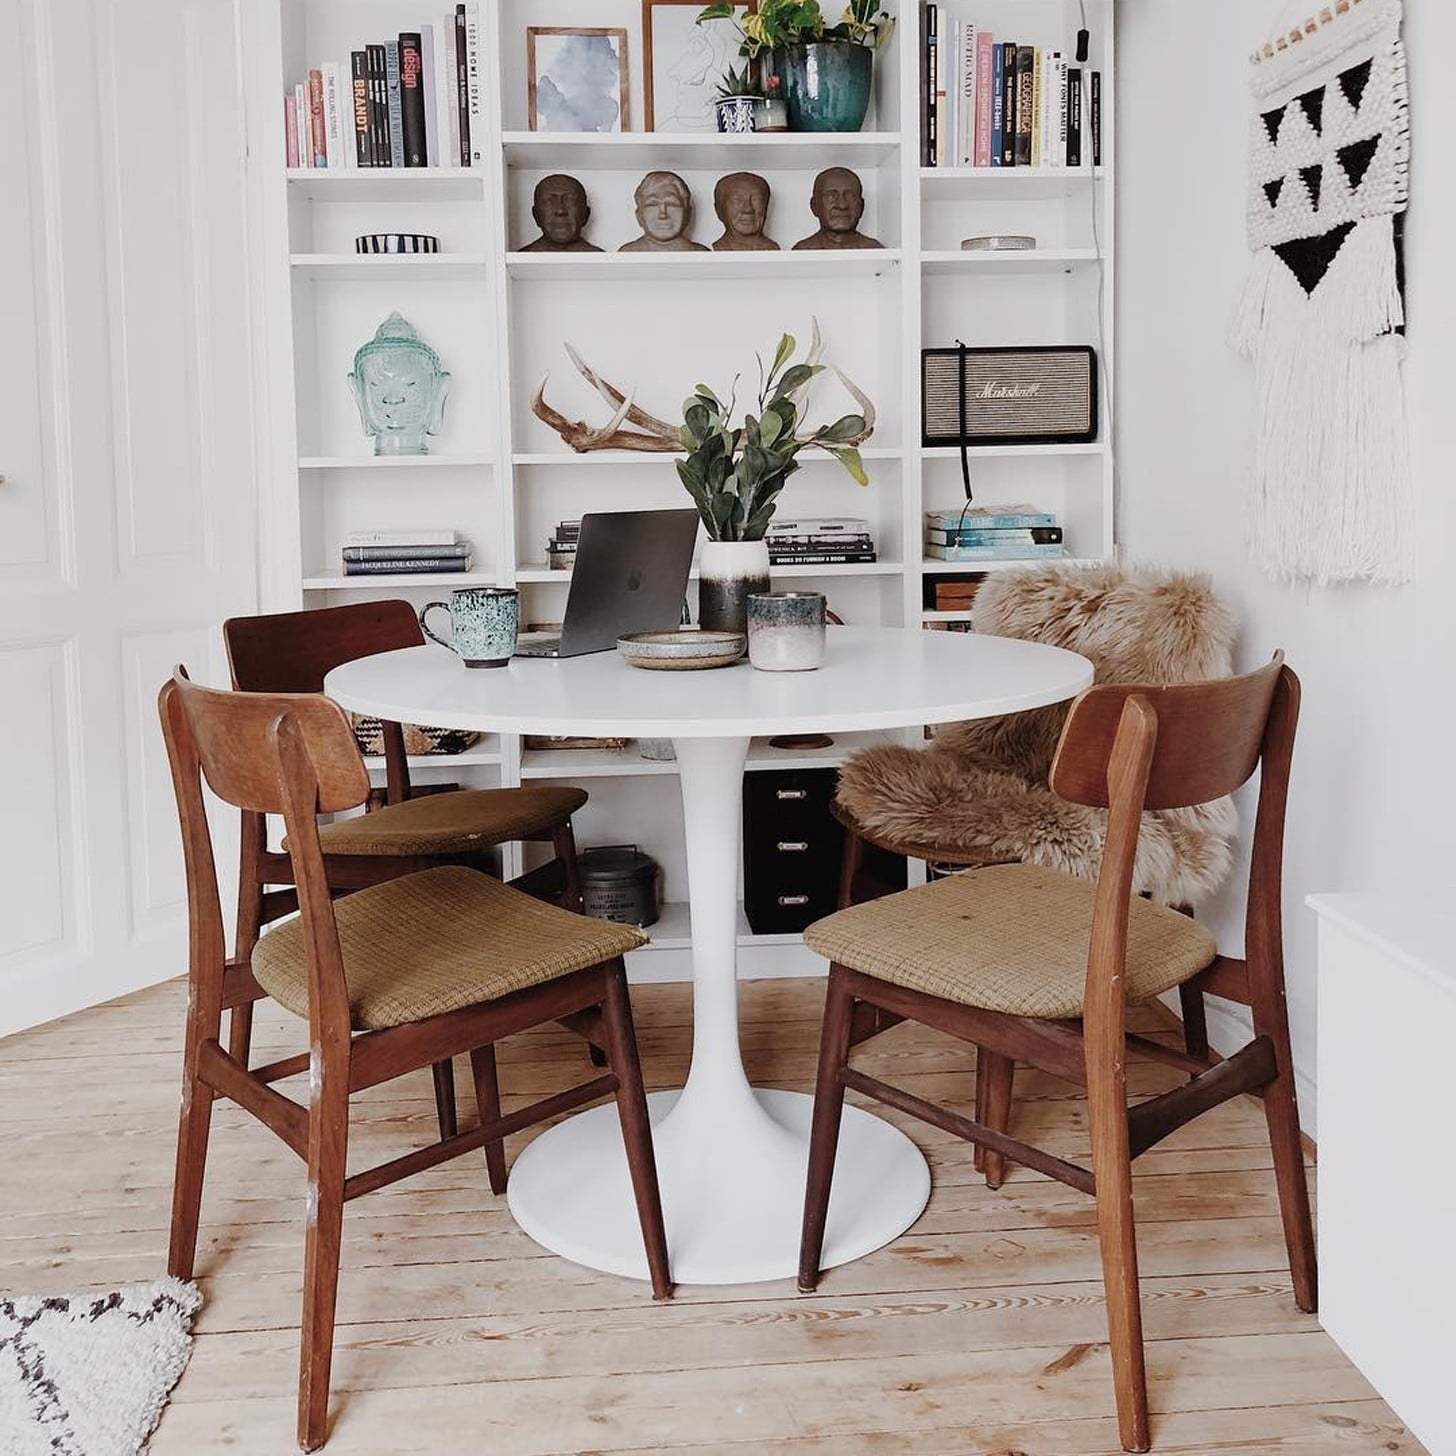 How To Style The Ikea Billy Bookcase Popsugar Home